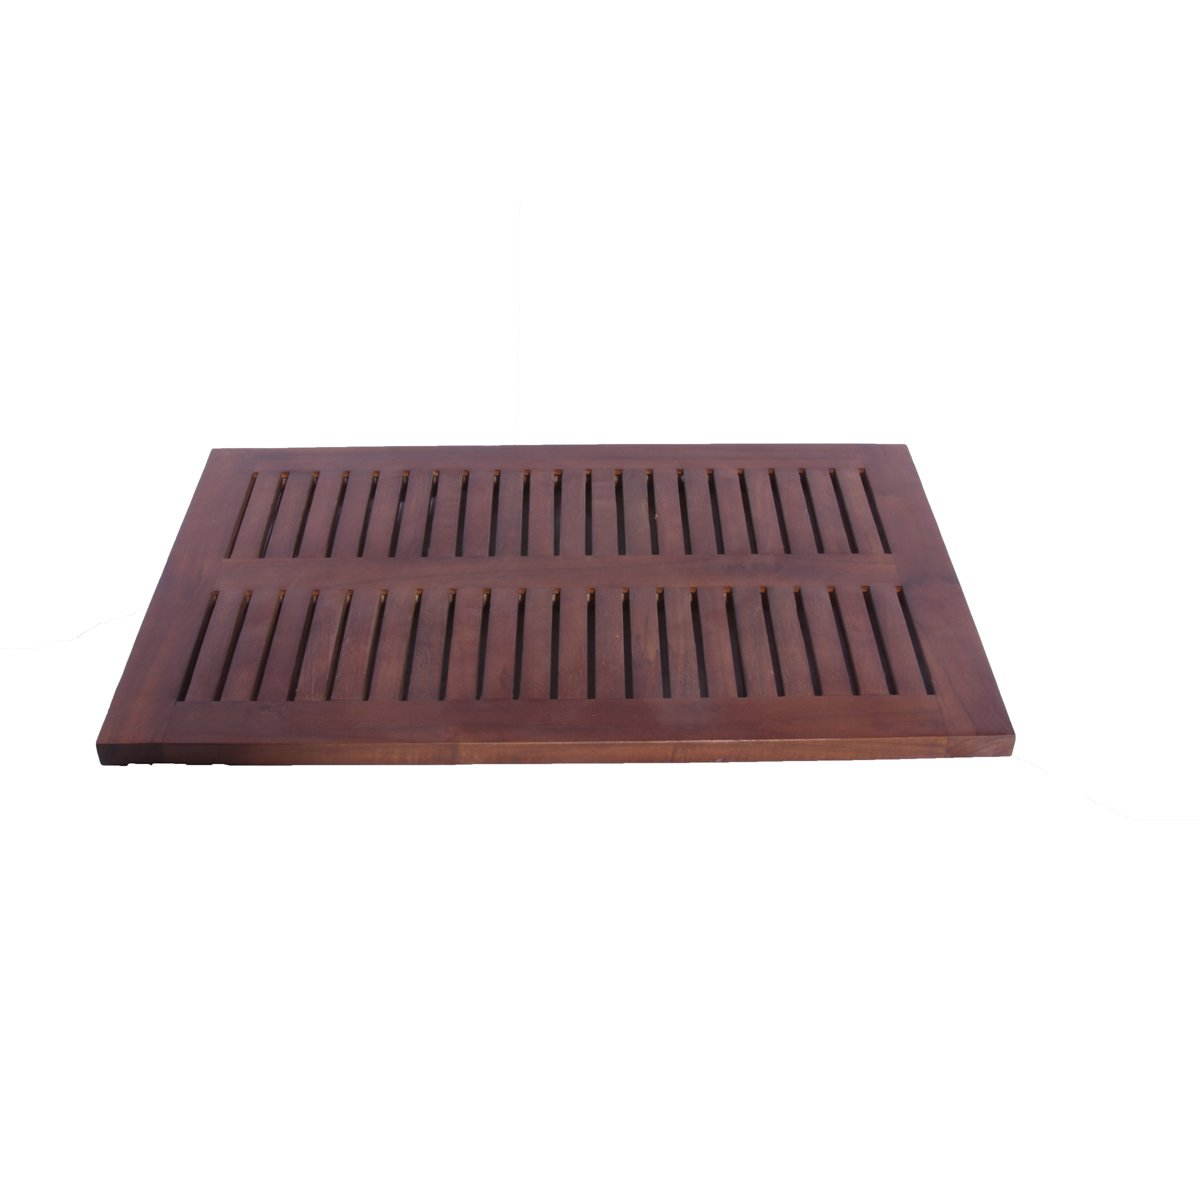 Decoteak Floor Bath Mat, 23'' x 15'' x 1 inch, Brown